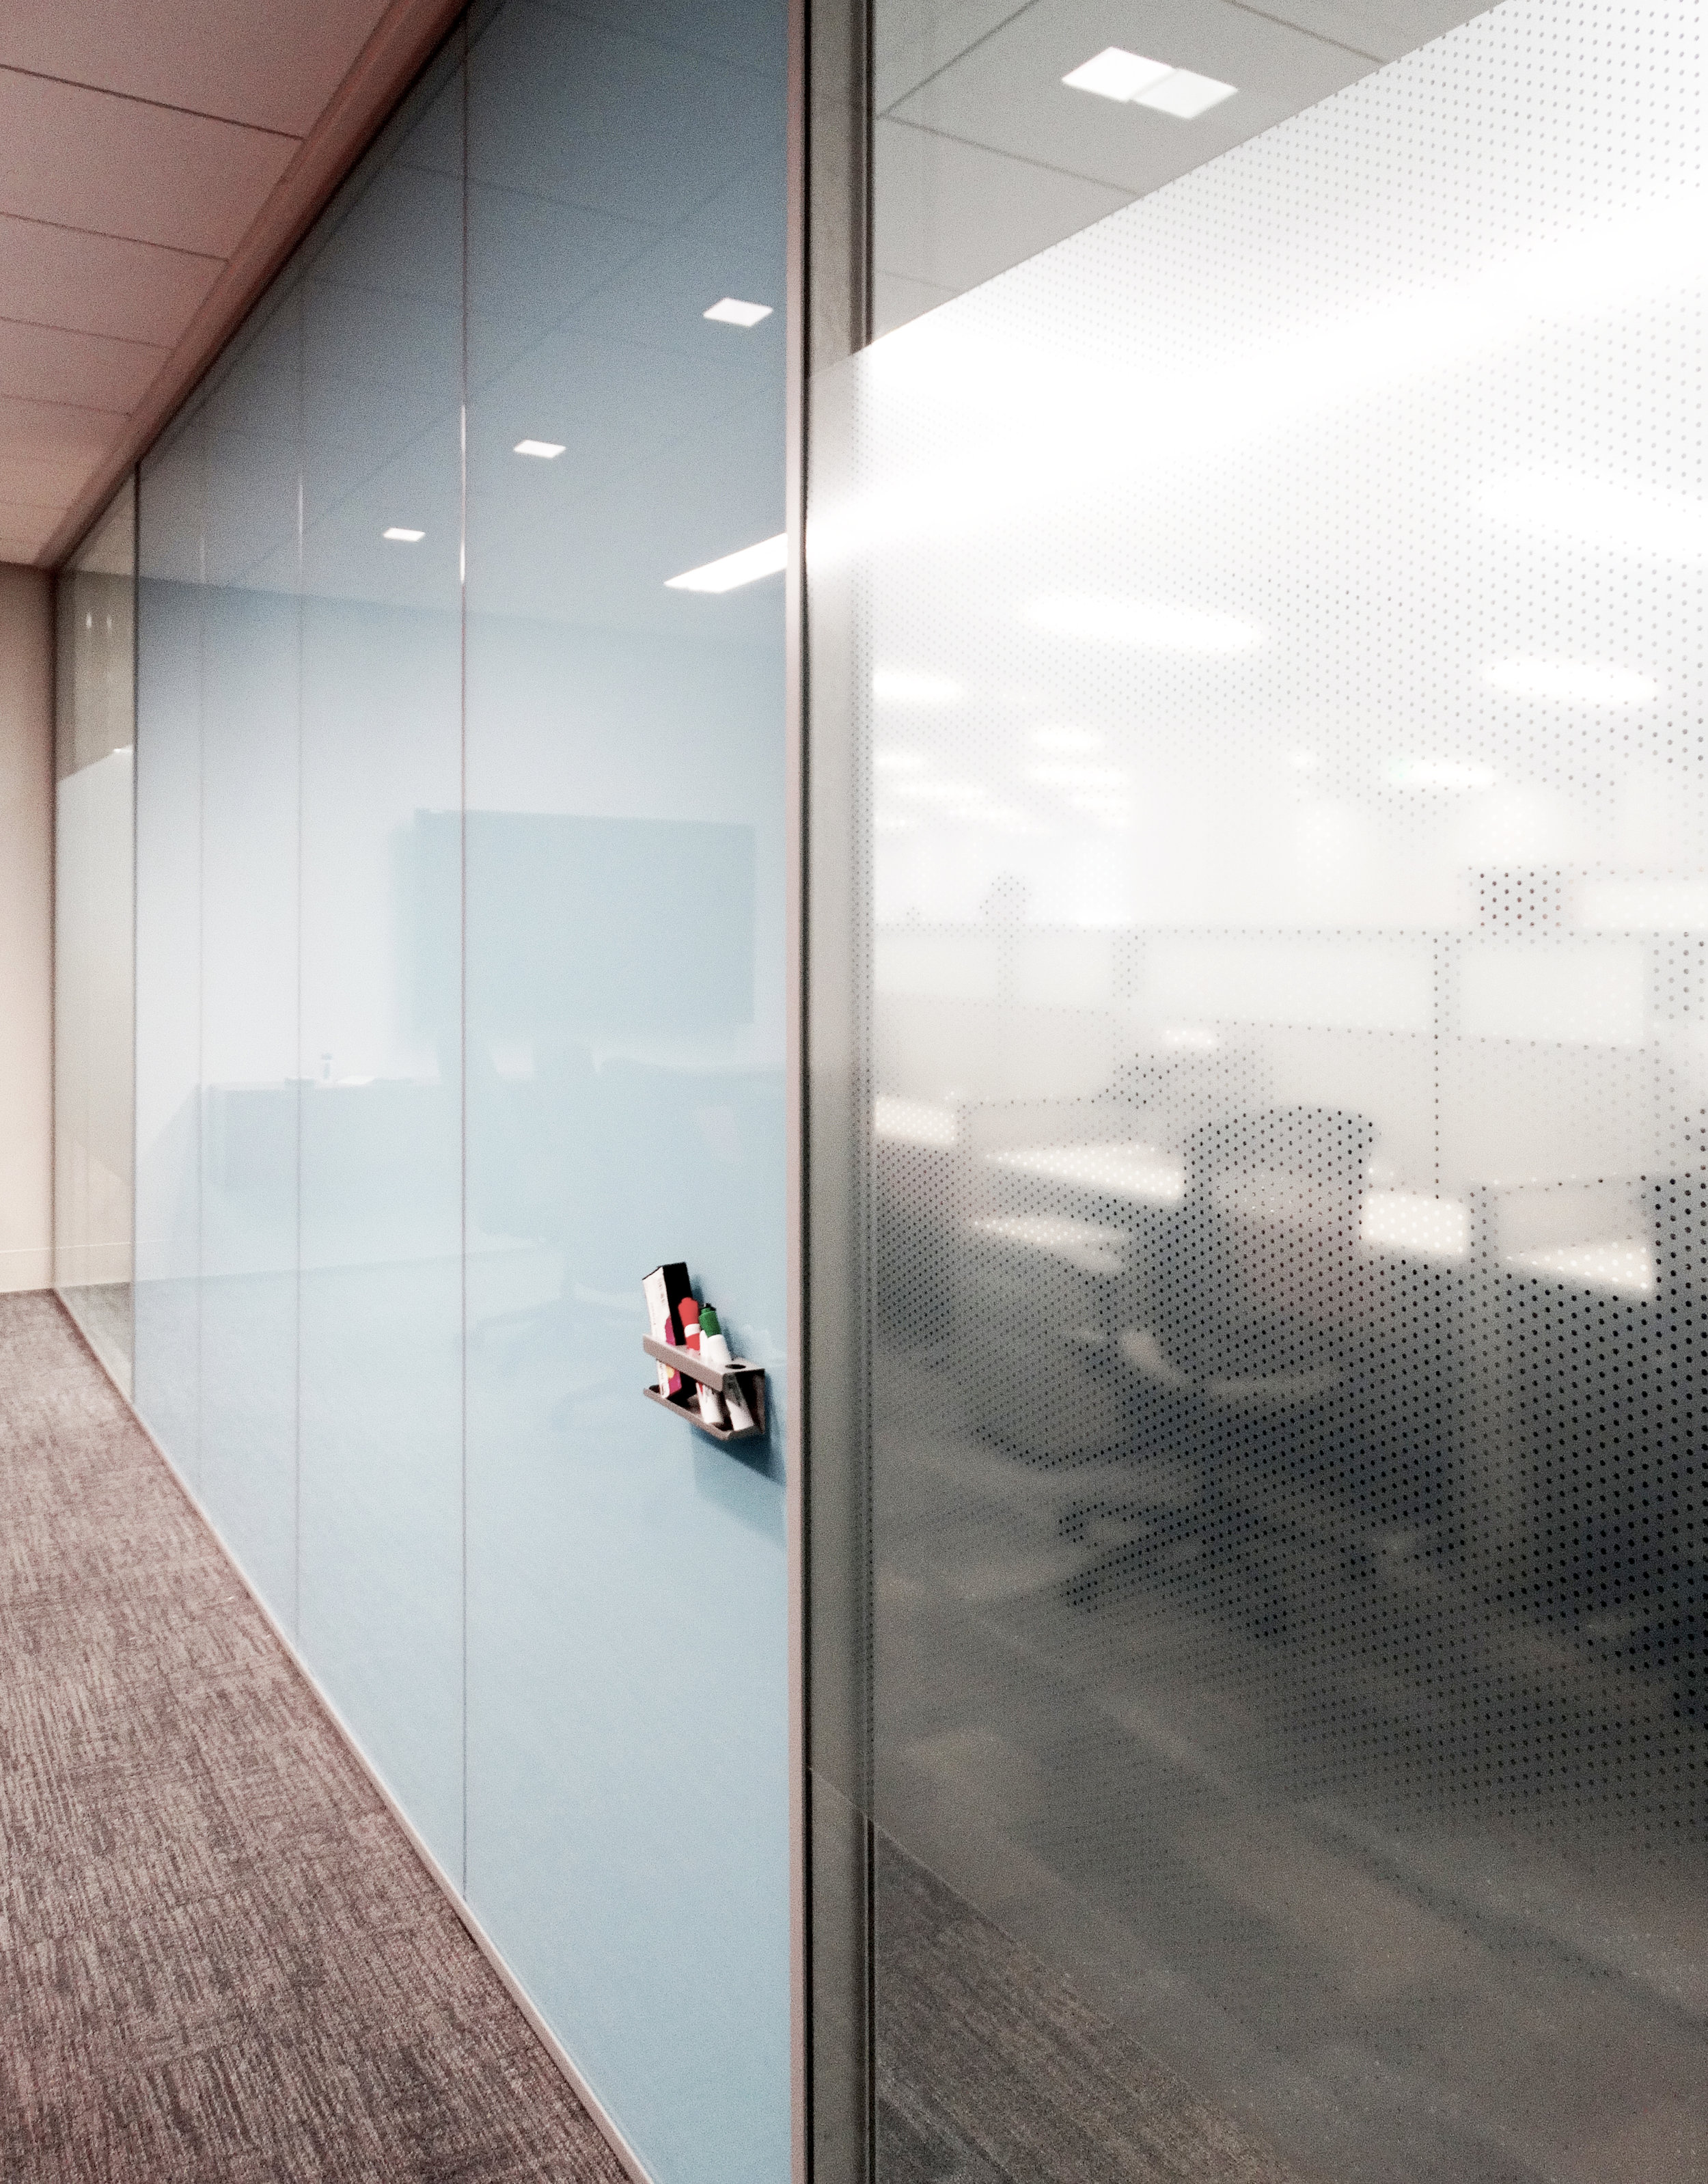 Dual Pane Specialty Glass Conference Room Wall - Spaceworks AI.jpg